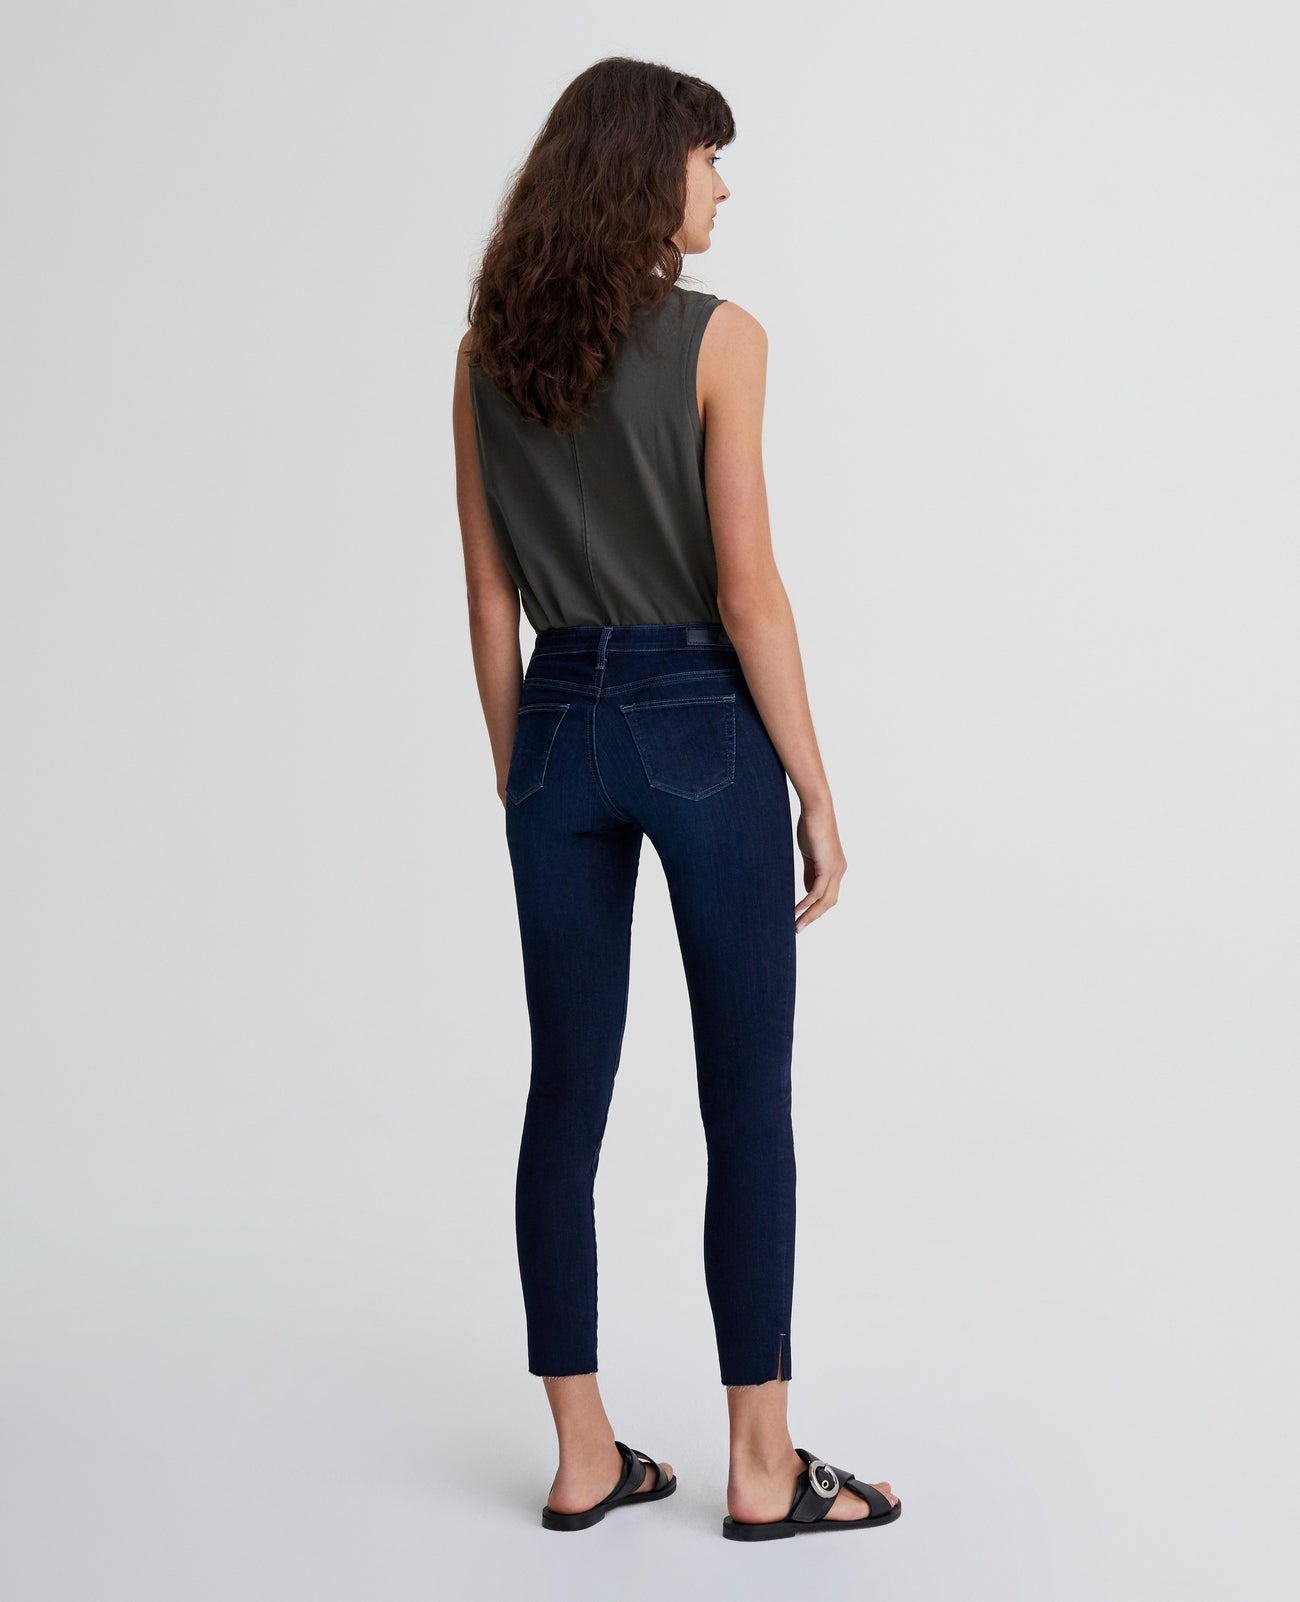 AG The Legging Ankle Jean in Concord